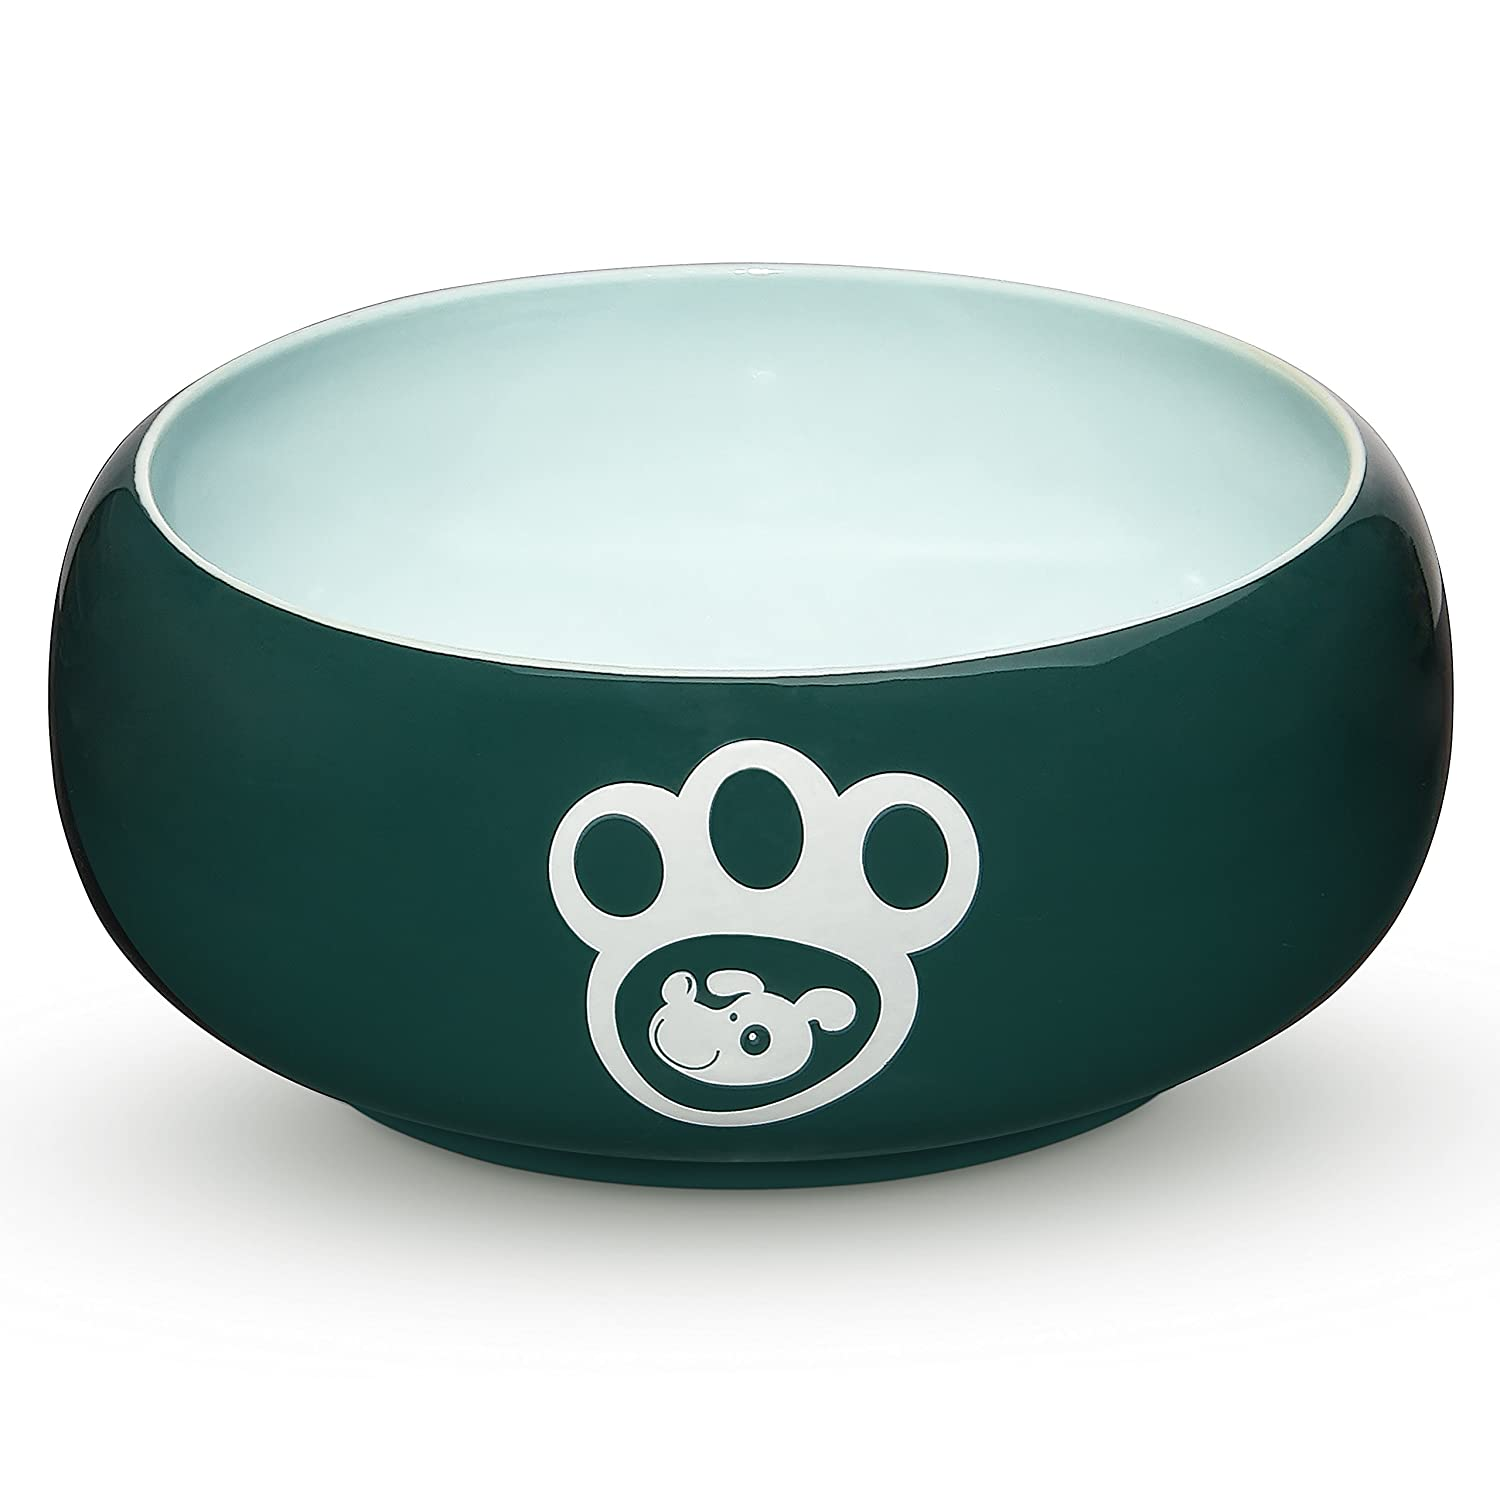 Green 55OZ Green 55OZ YHY Porcelain Dog Bowls Food Water, 55 oz Pet Feeder Bowl Delicate Paw Printed, Suitable Medium Large Size Dog Dish, Muticolor